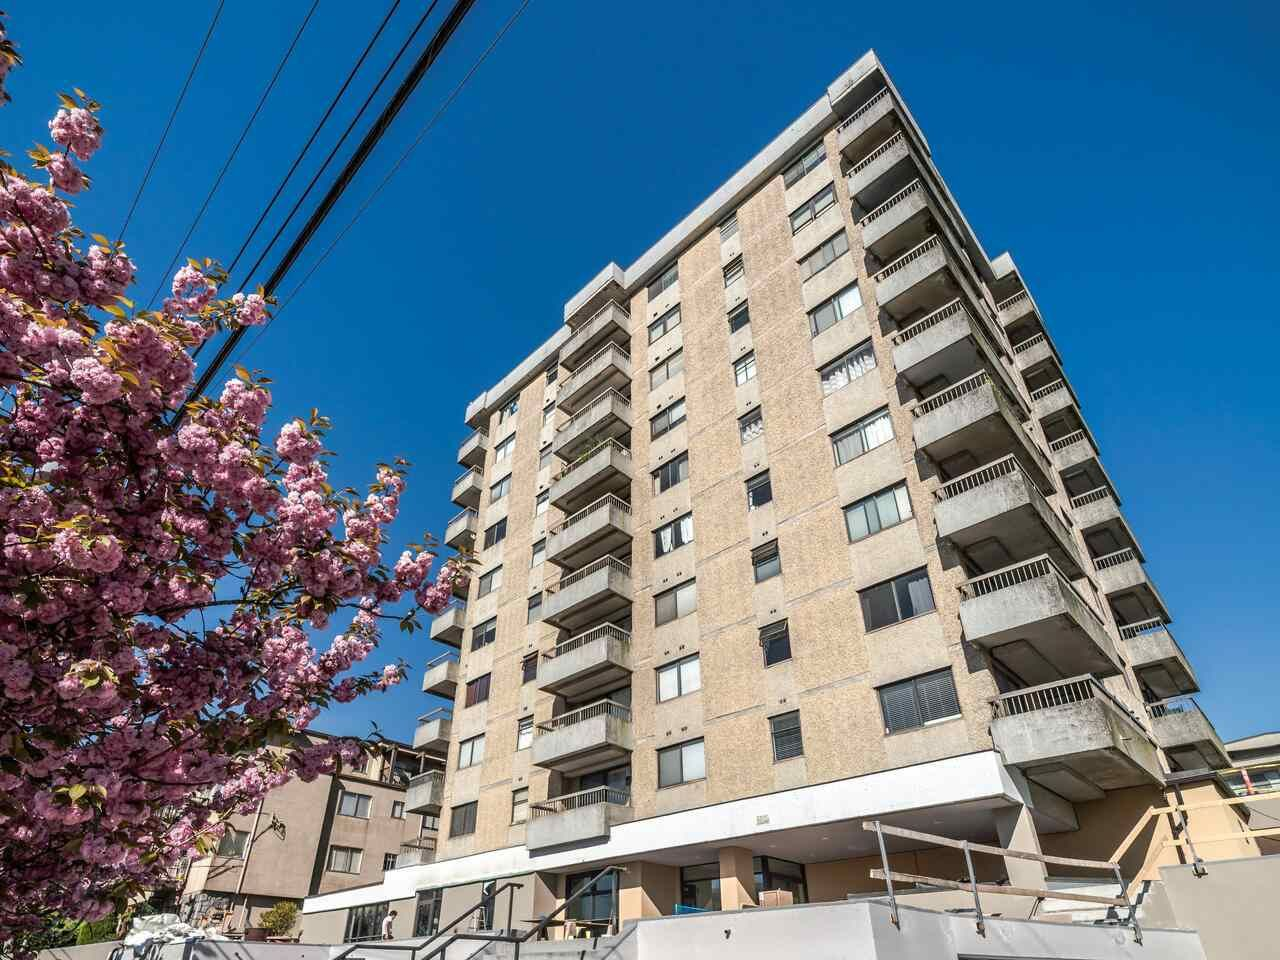 """Main Photo: 501 209 CARNARVON Street in New Westminster: Downtown NW Condo for sale in """"ARGYLE HOUSE"""" : MLS®# R2570499"""